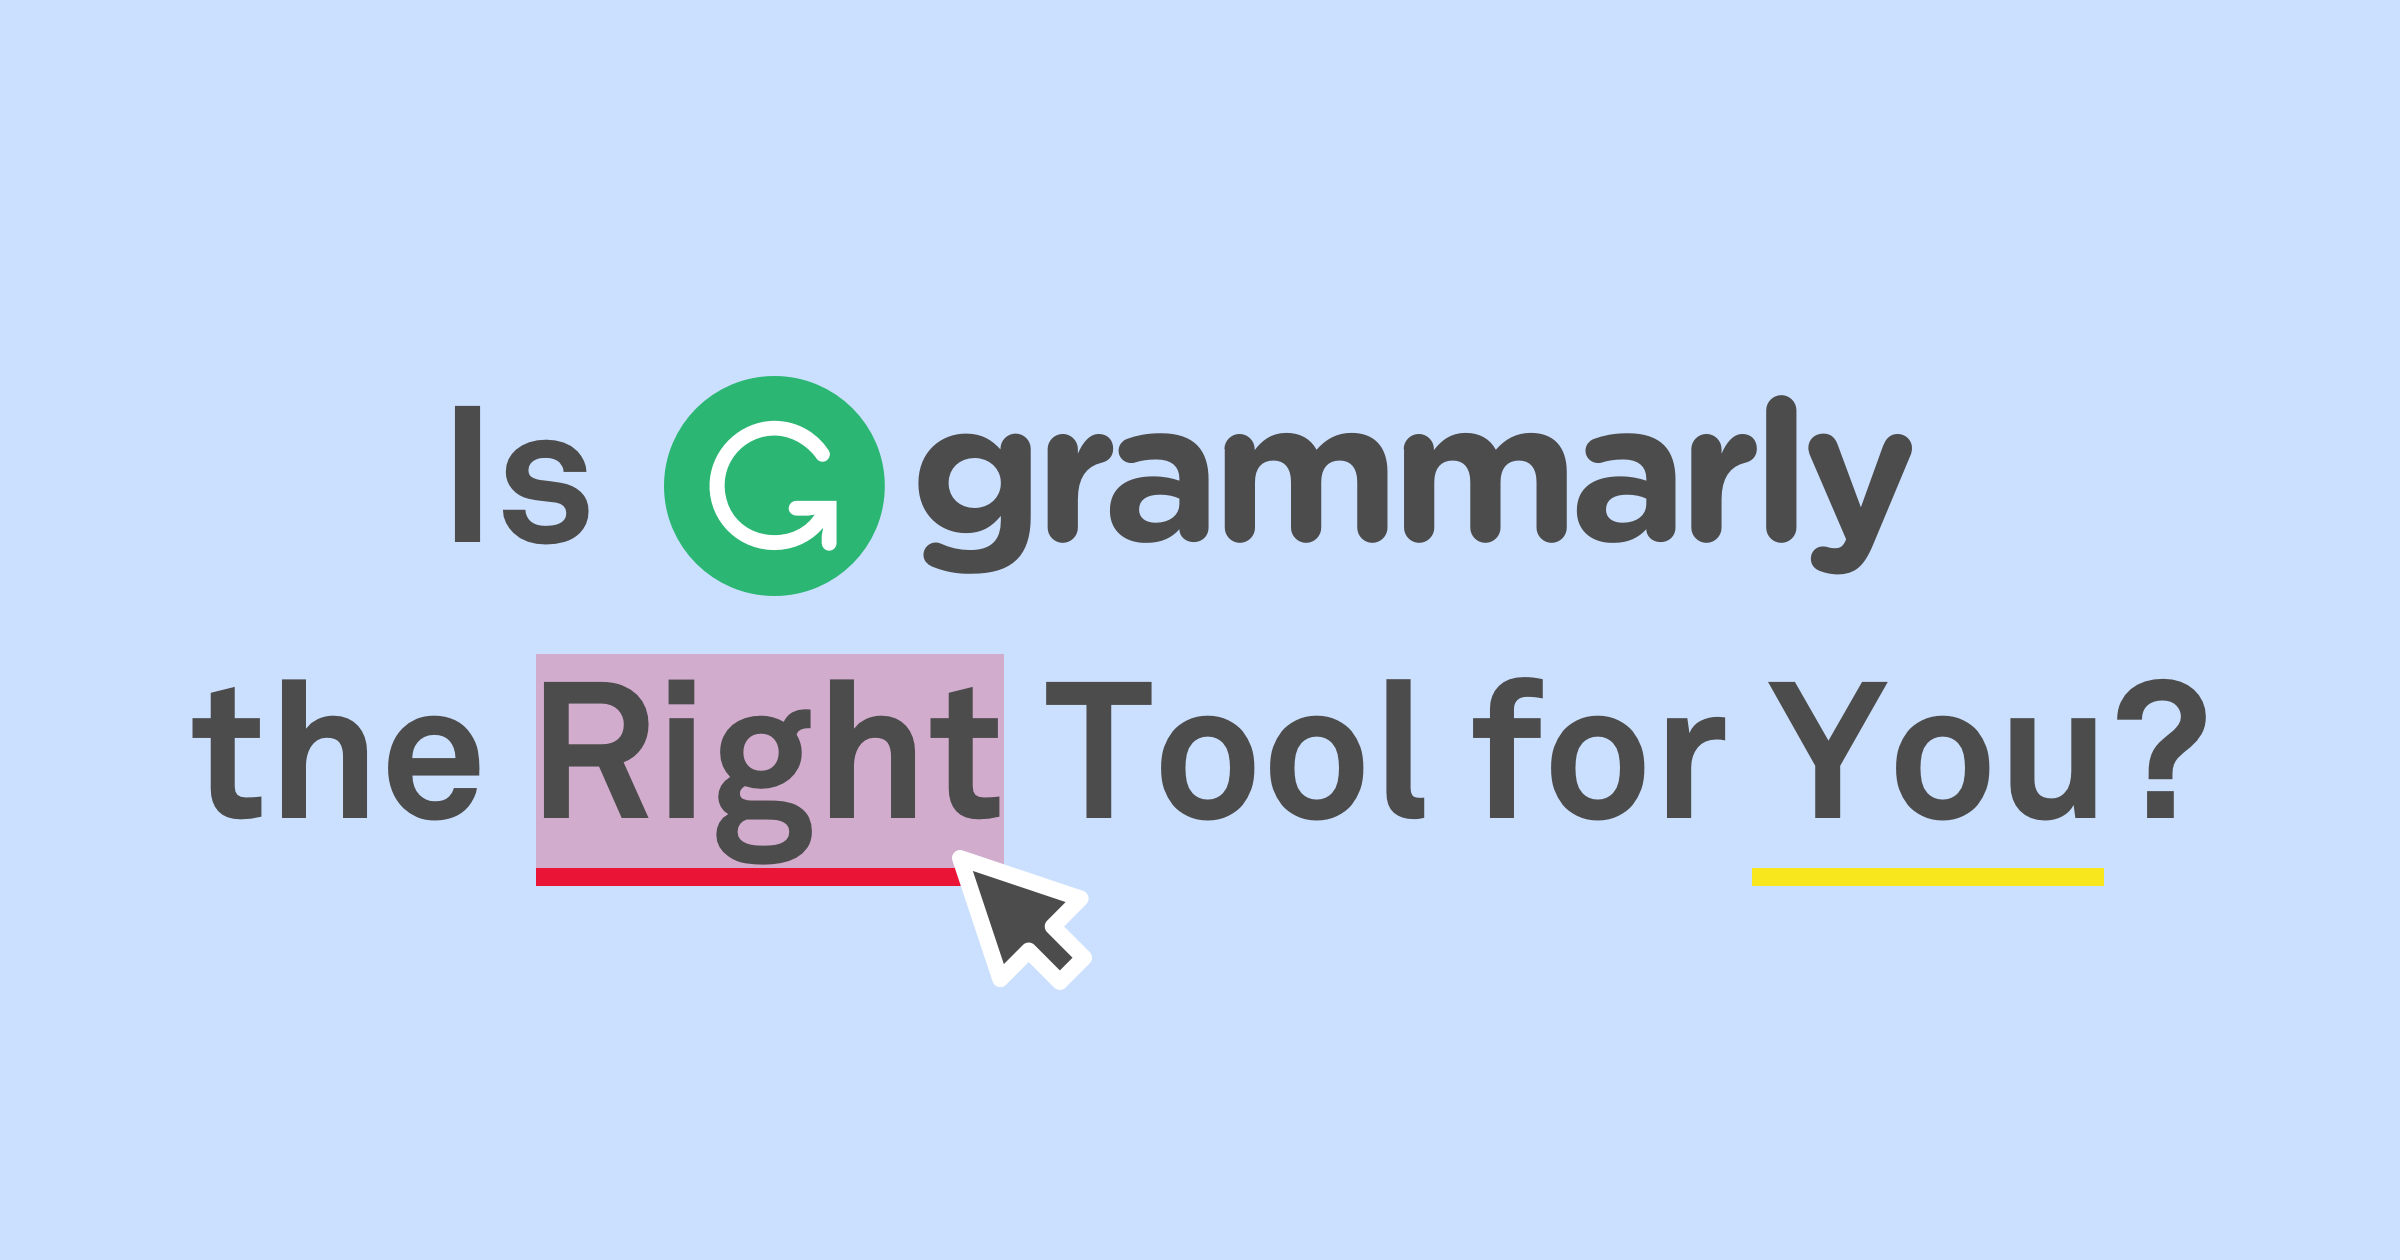 Promotion Proofreading Software Grammarly April